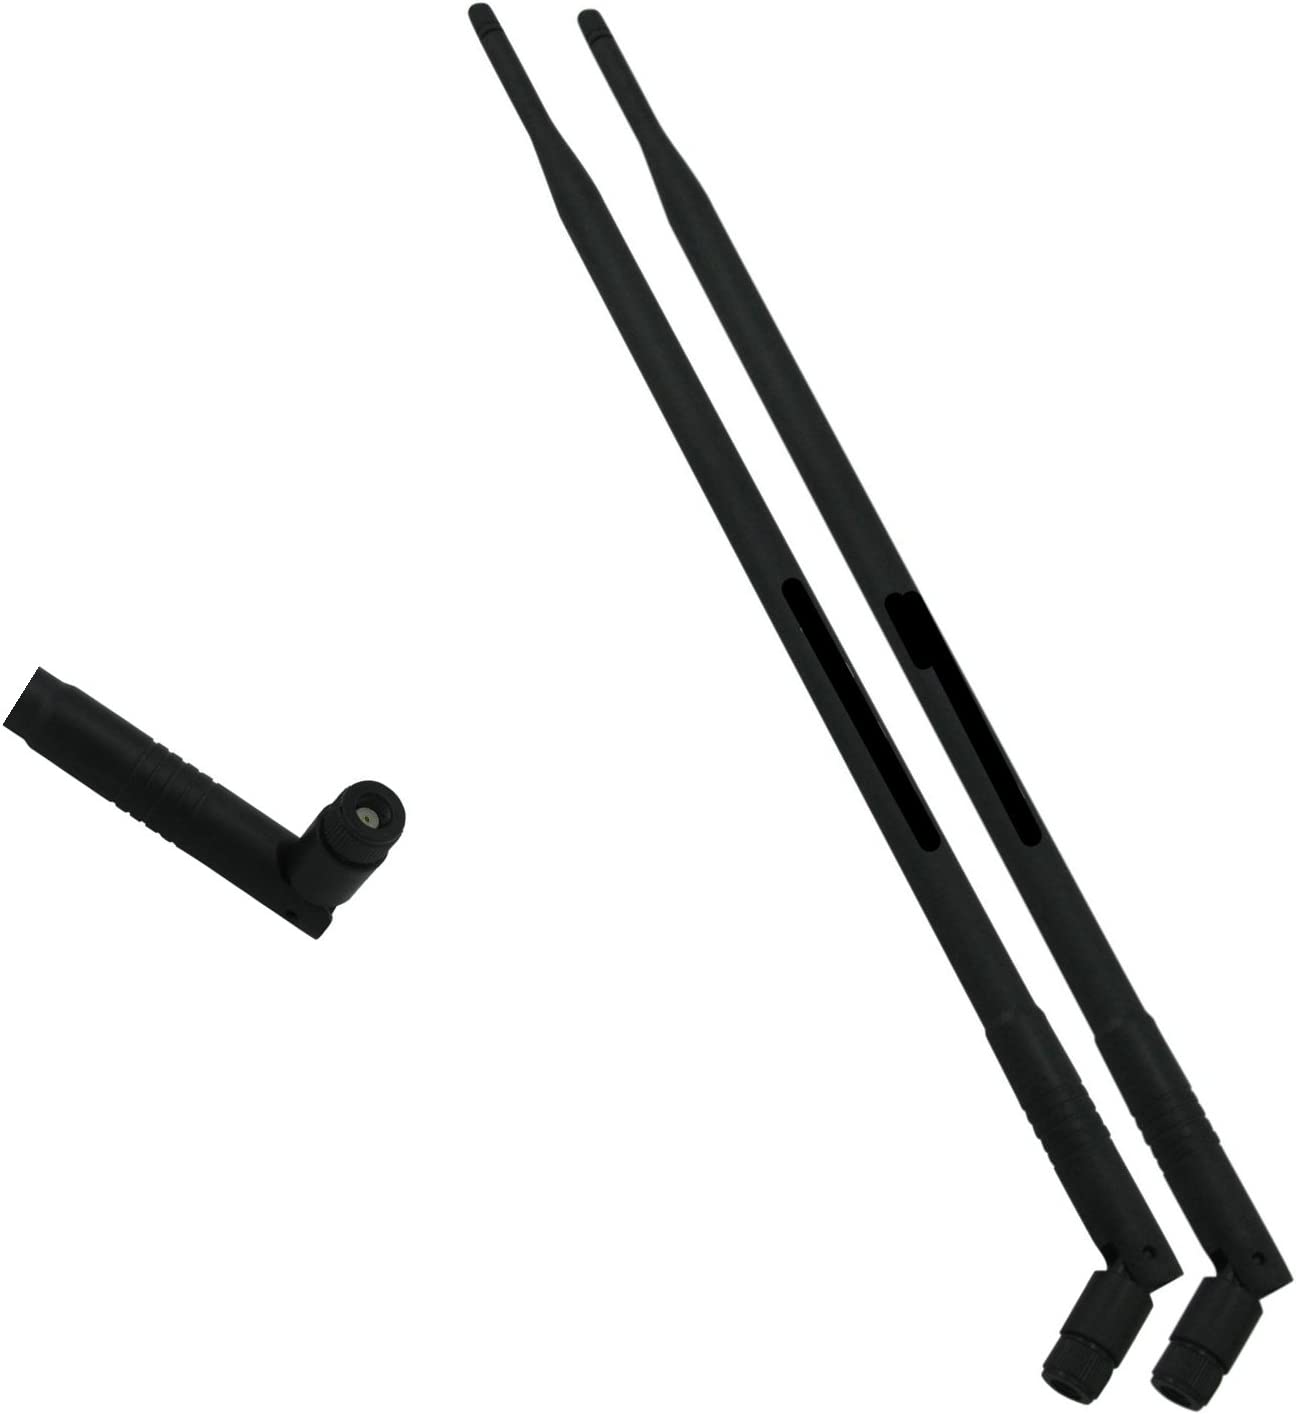 9dBi 2.4GHz 5GHz Dual Band RP-SMA WiFi Antenna For TP-Link TL-WR940N TL-WDN4800